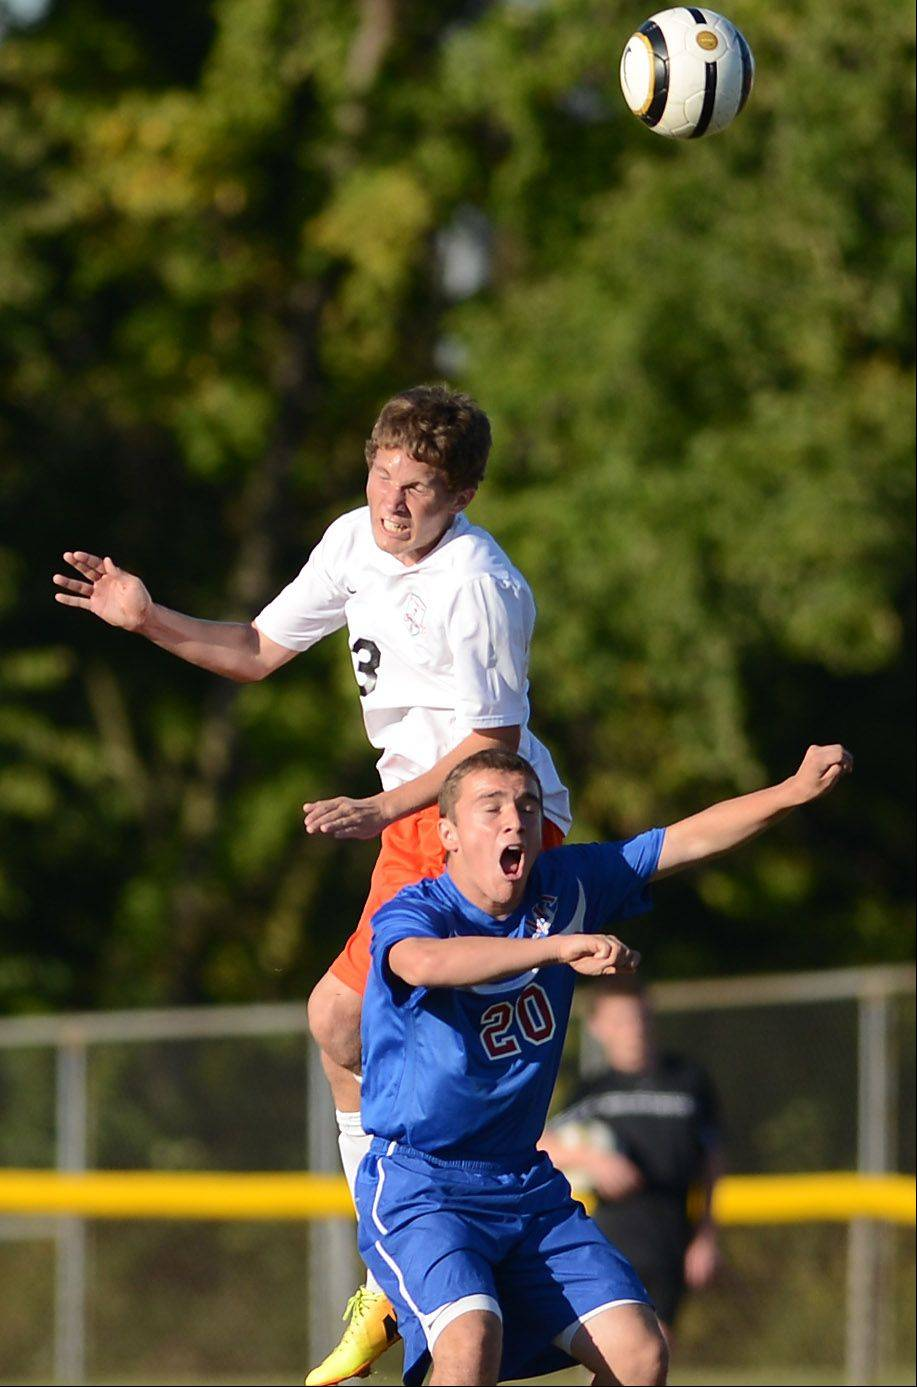 St. Charles East's Jared Brown goes up to win a header over Marmion's Nicholas Grant during Thursday's game in St. Charles.